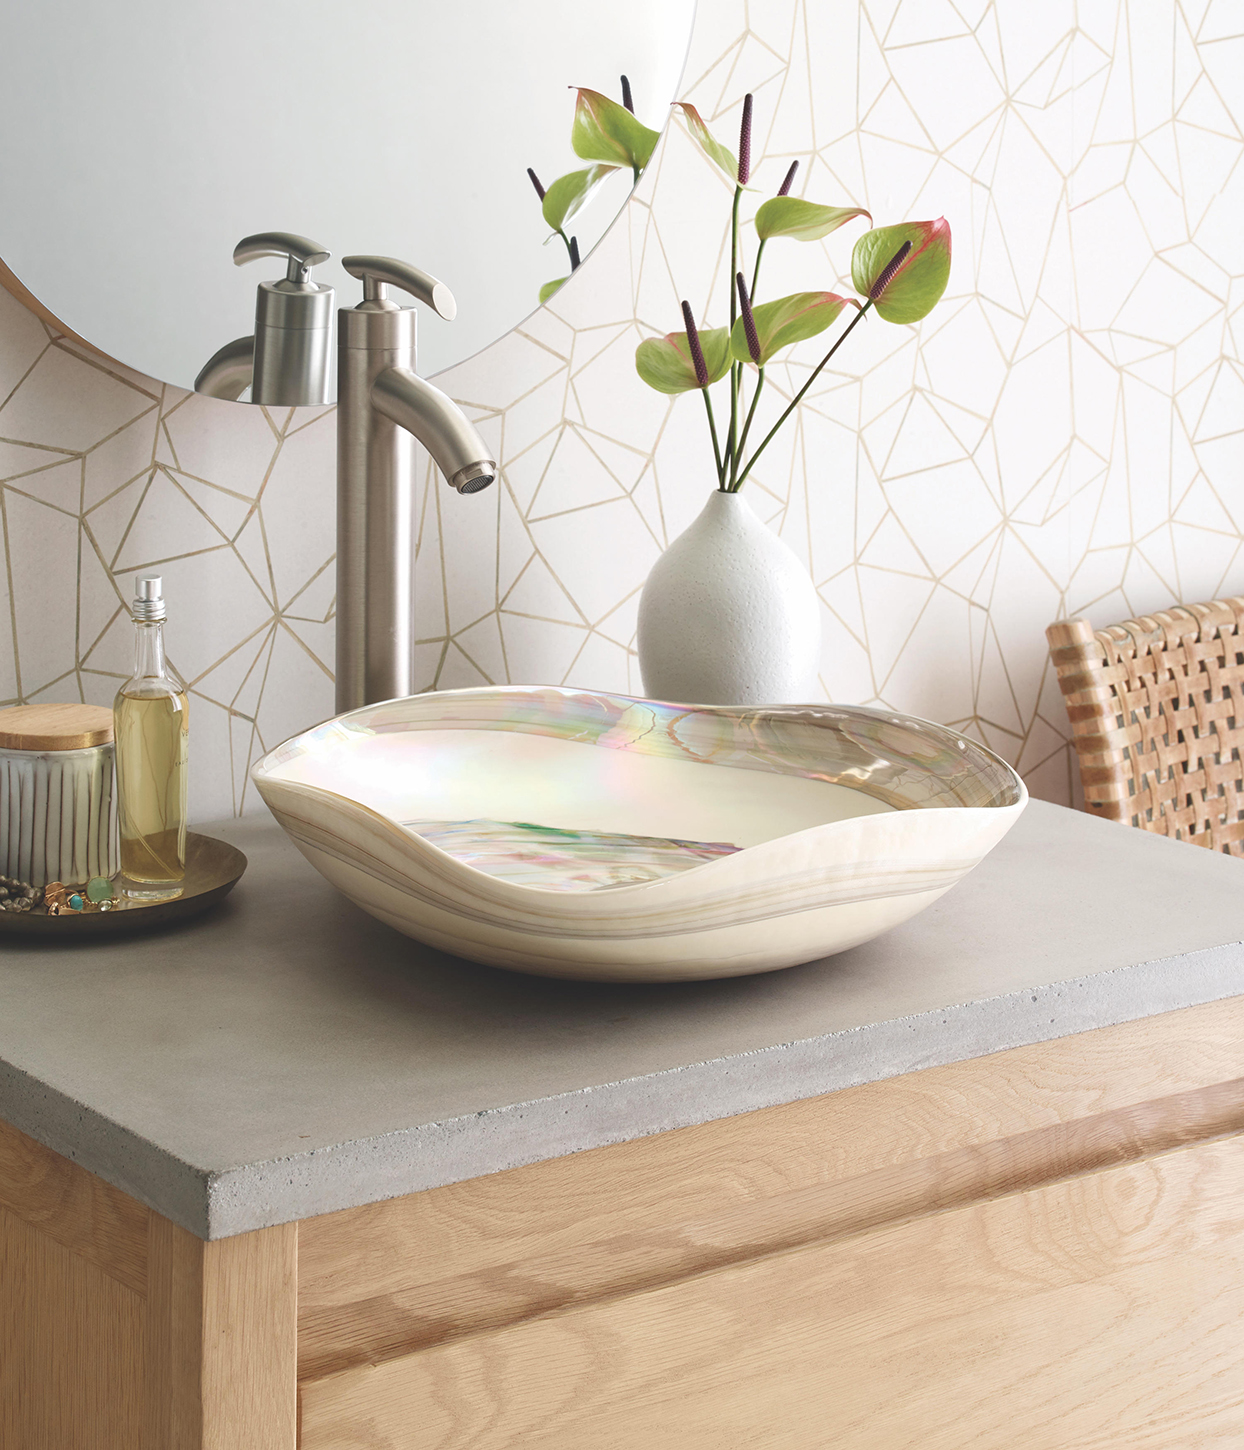 glass vessel bathroom sink with curved shape